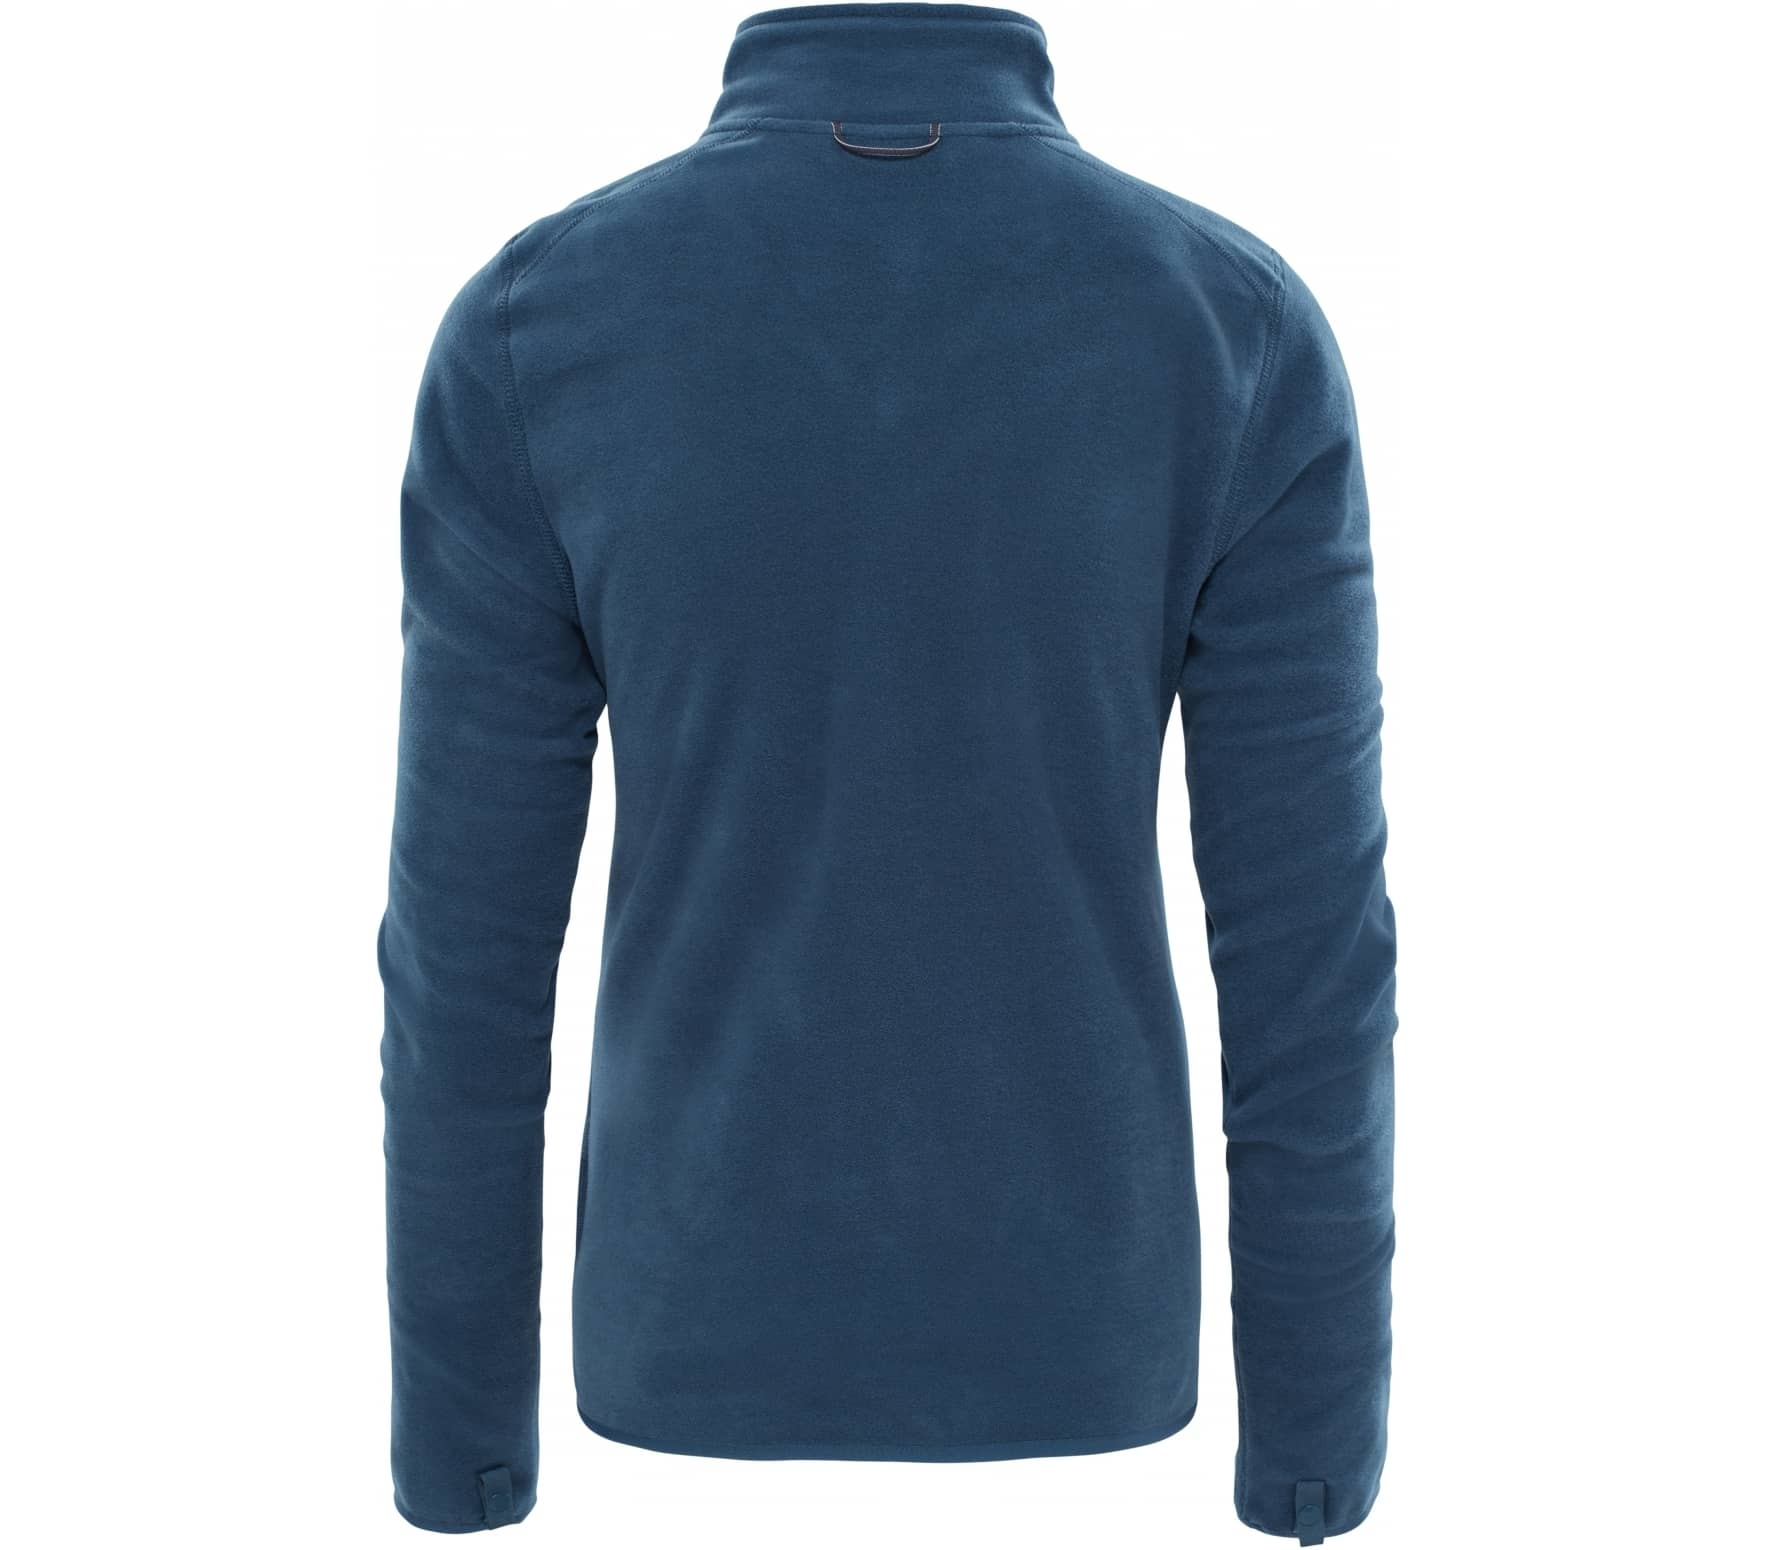 The North Face - 100 Glacier Full Zip Donna giacca in pile (blu ... c2d8a8accfce